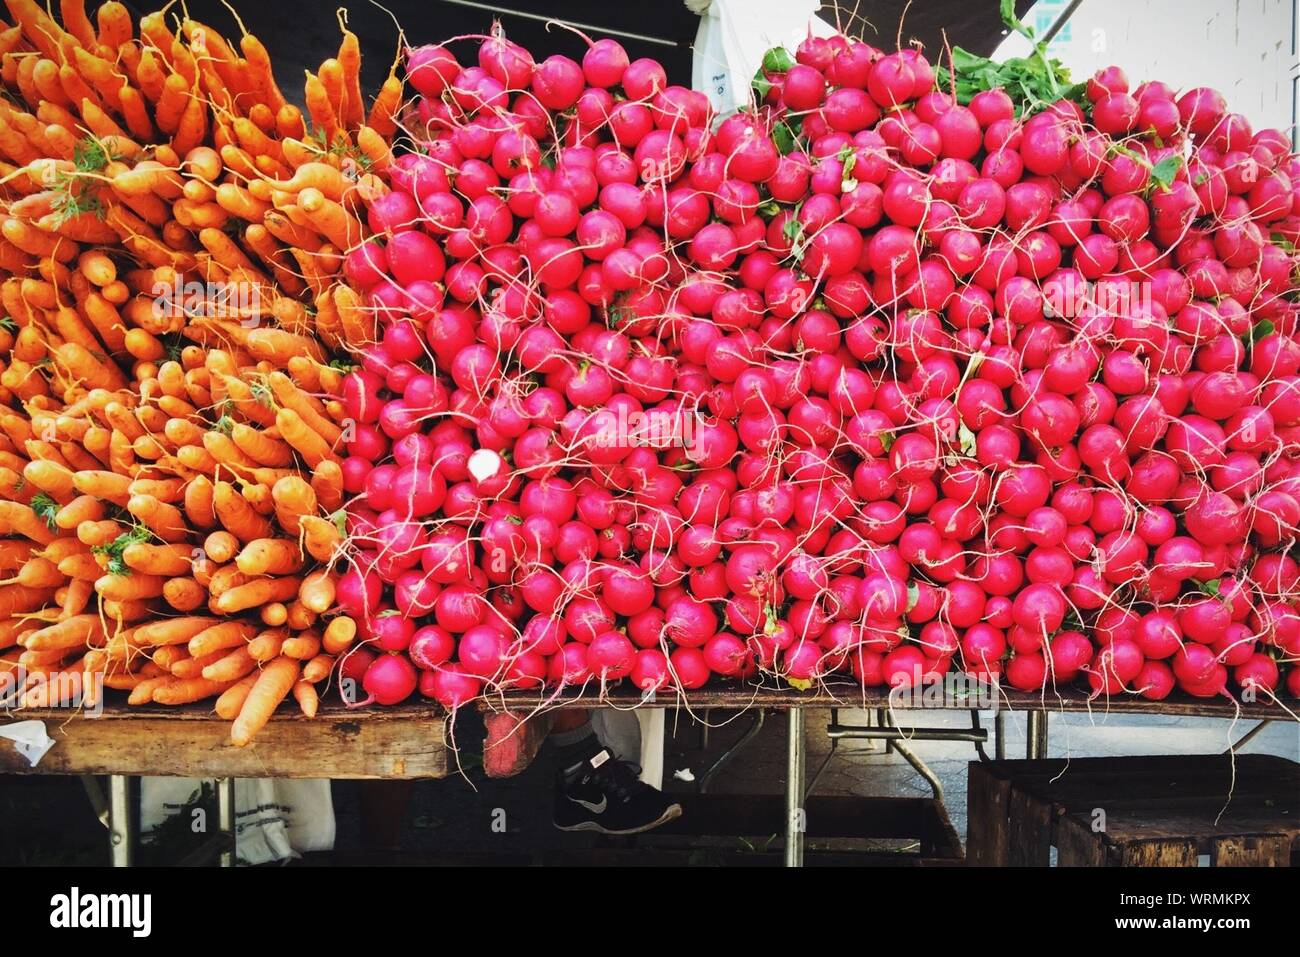 Heaps Of Carrots And Radishes On Table For Sale Stock Photo